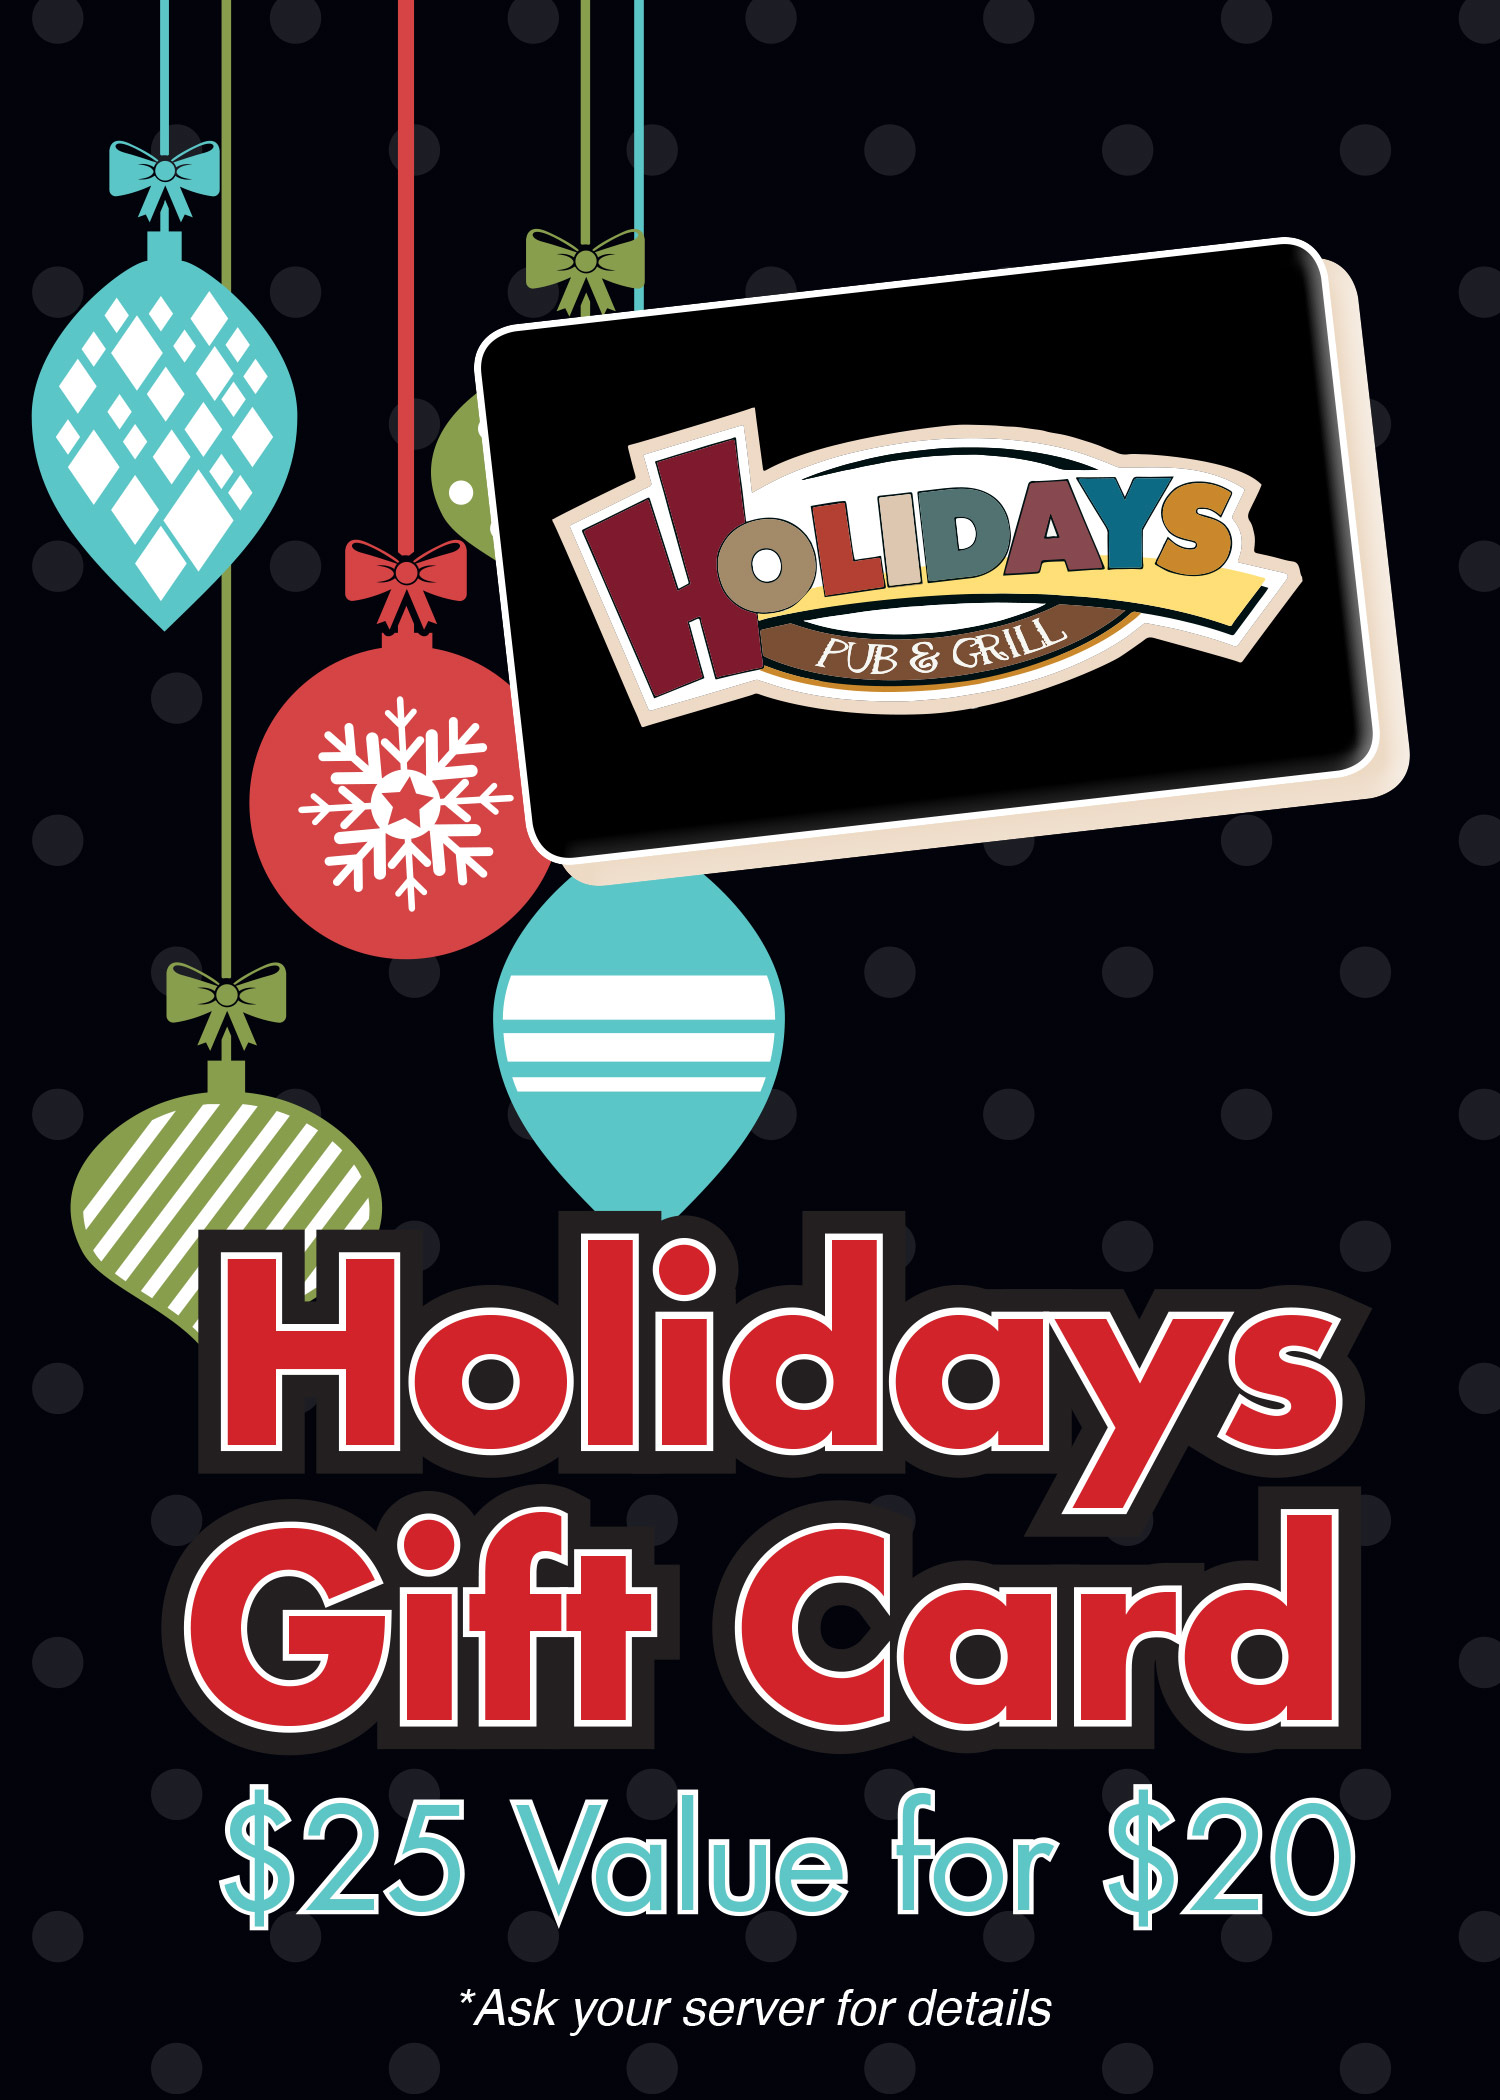 Holidays Gift Cards